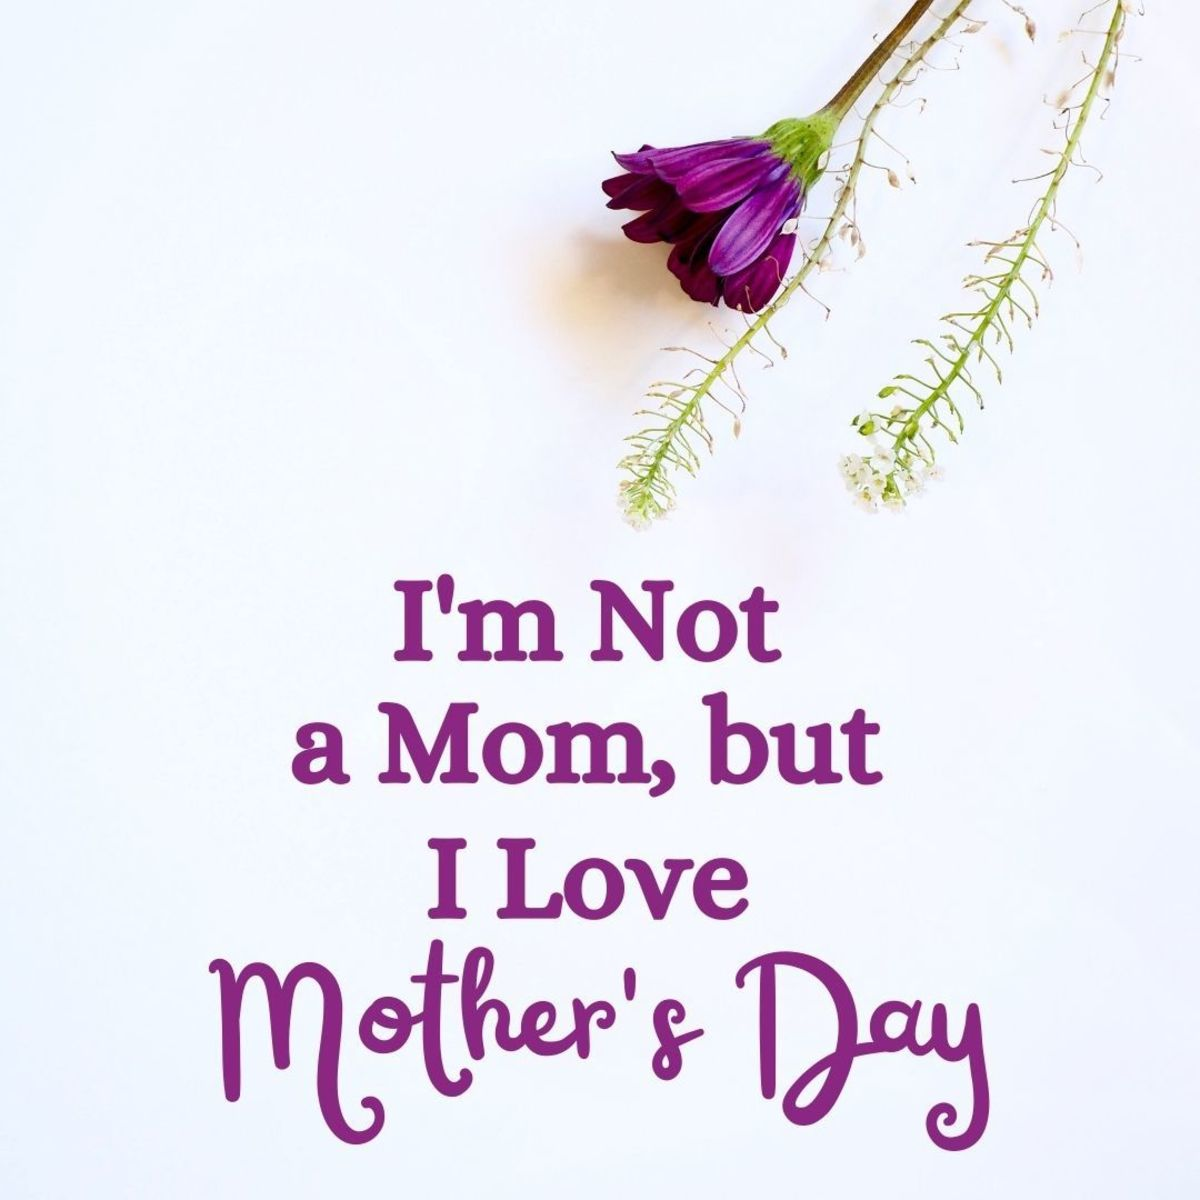 Learn about Mother's Day from the perspective of someone who's not a mom.